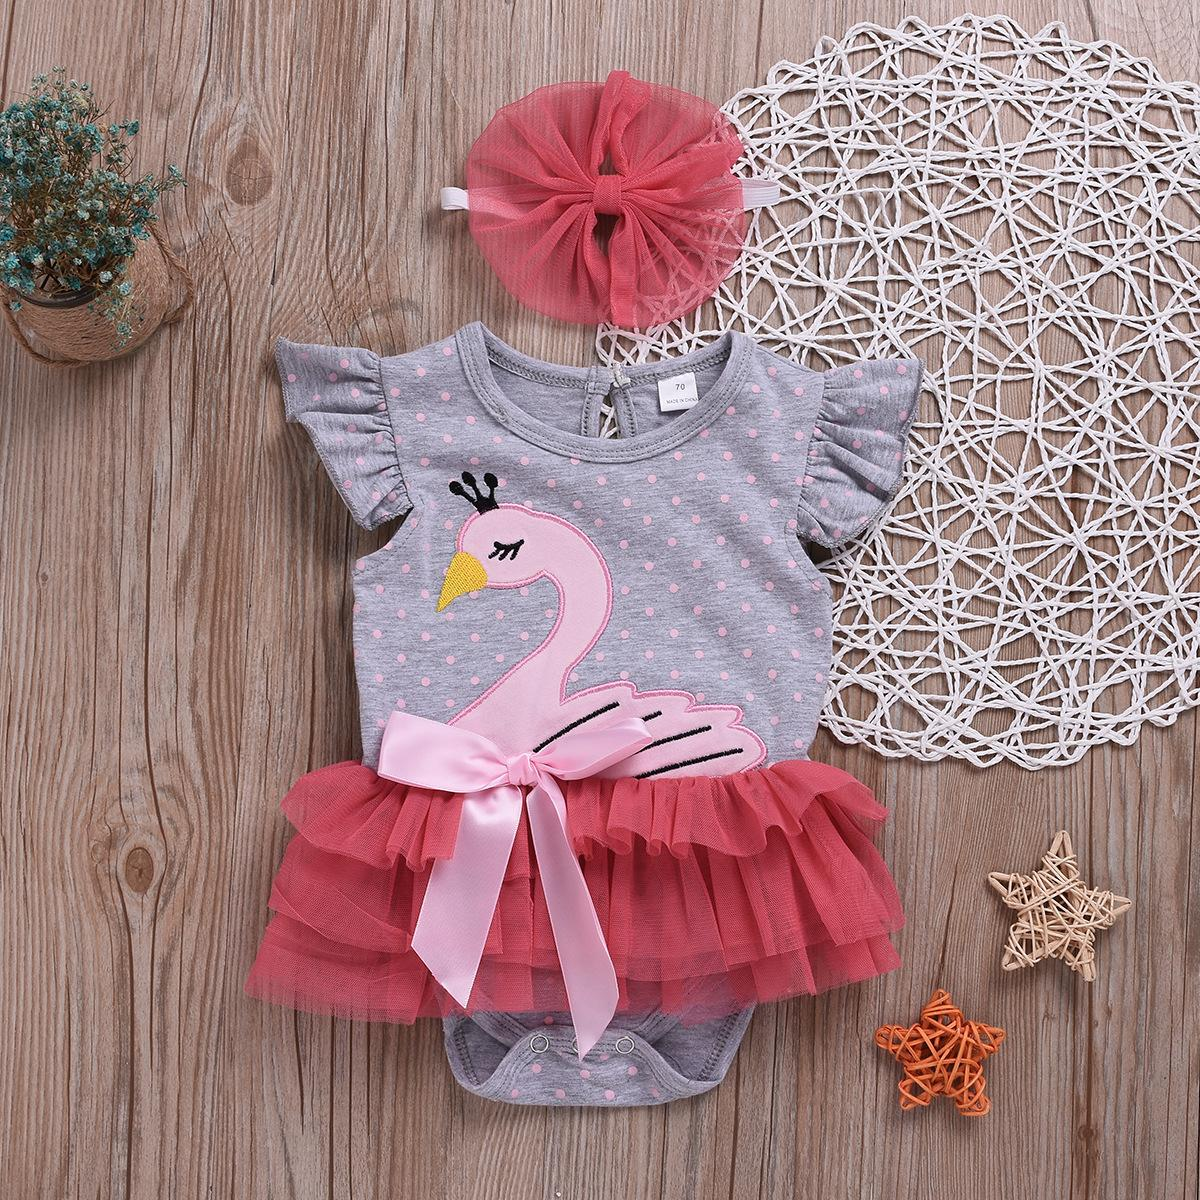 5f68be9aa Baby Girls Swan Romper with Bow Headband Cartoon Infant Lace Tulle ...